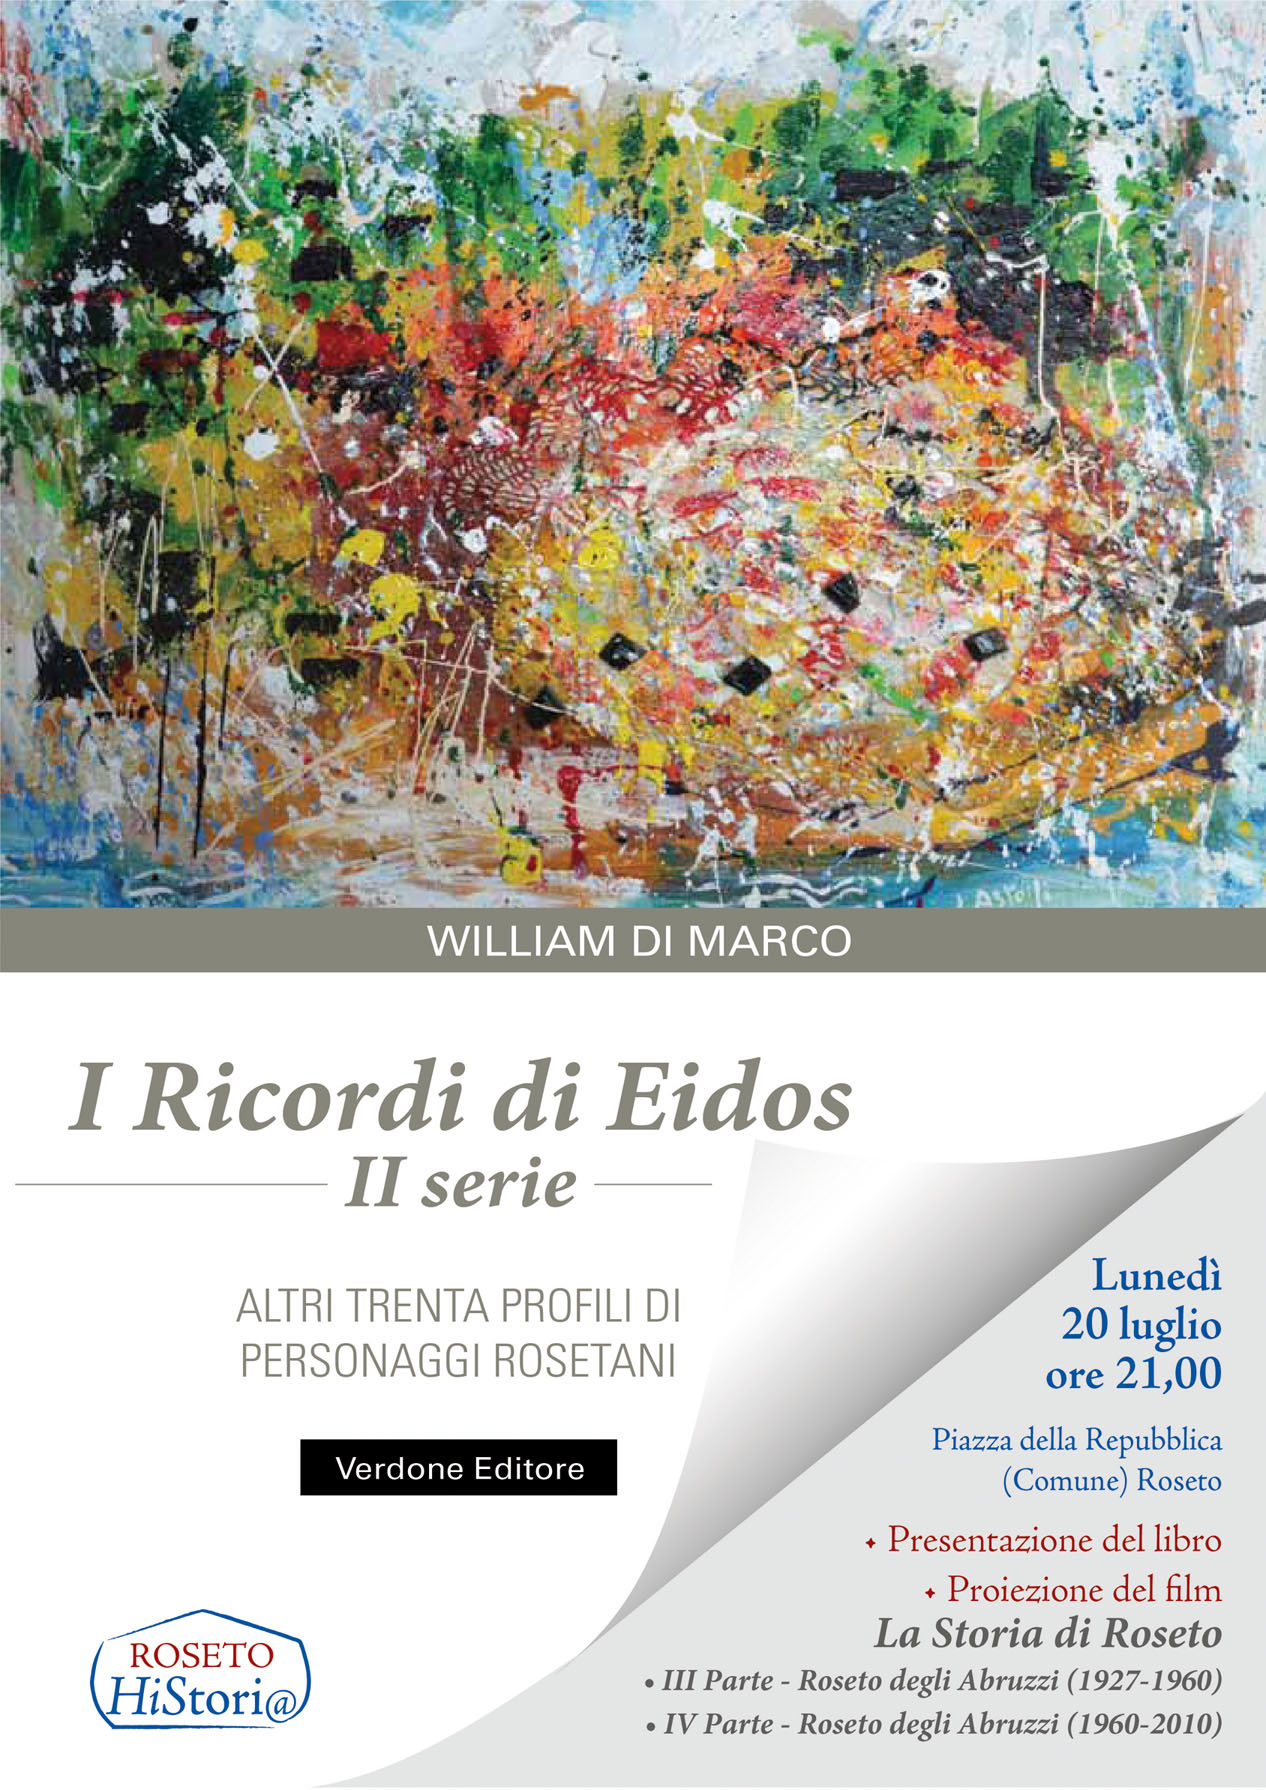 http://www.williamdimarco.it/files/54 - Copertina Eidos I Ricordi di Eidos II serie.jpg